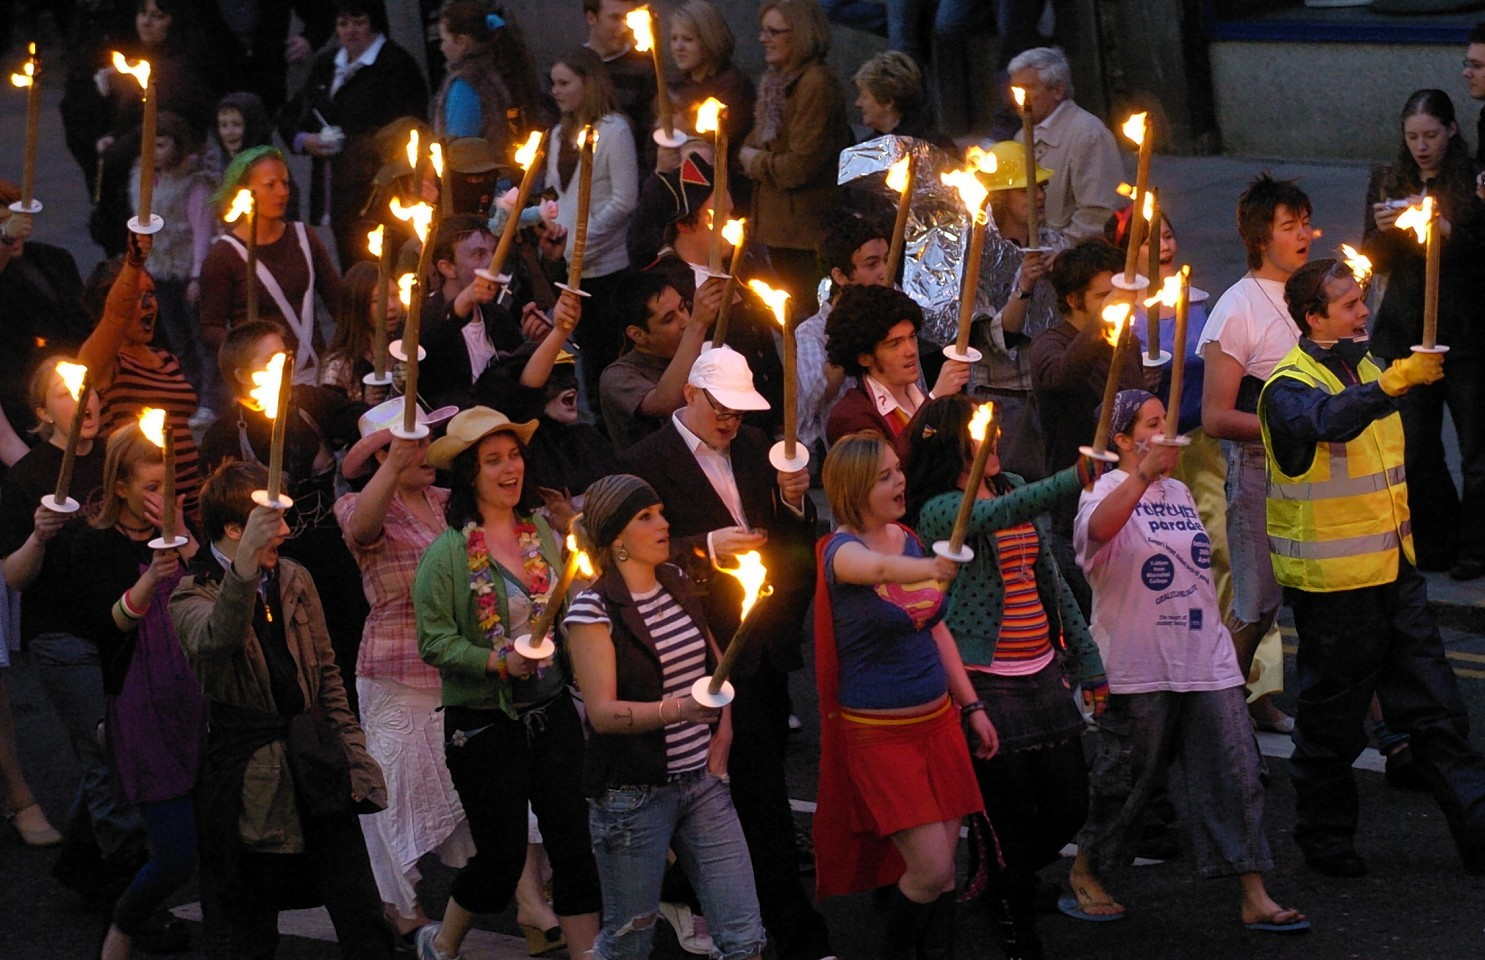 The torch bearers at the 2014 event